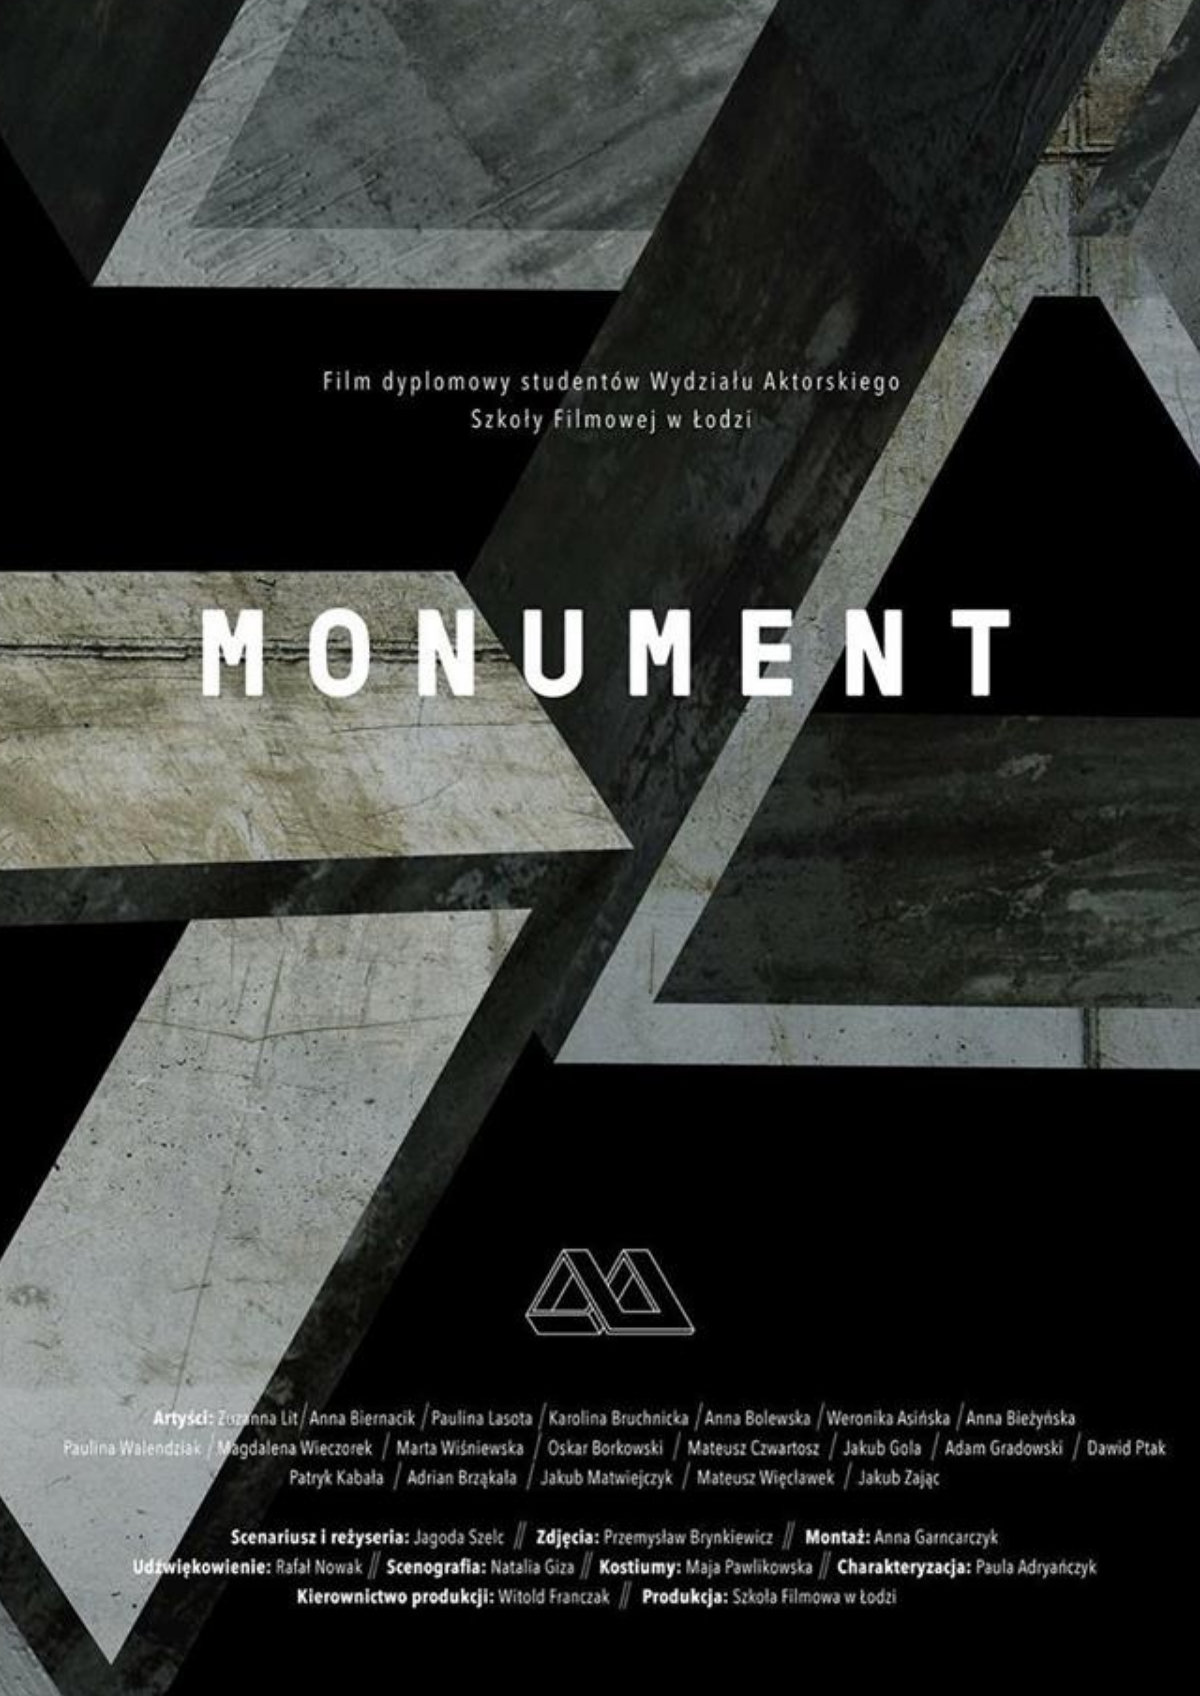 'Monument' movie poster